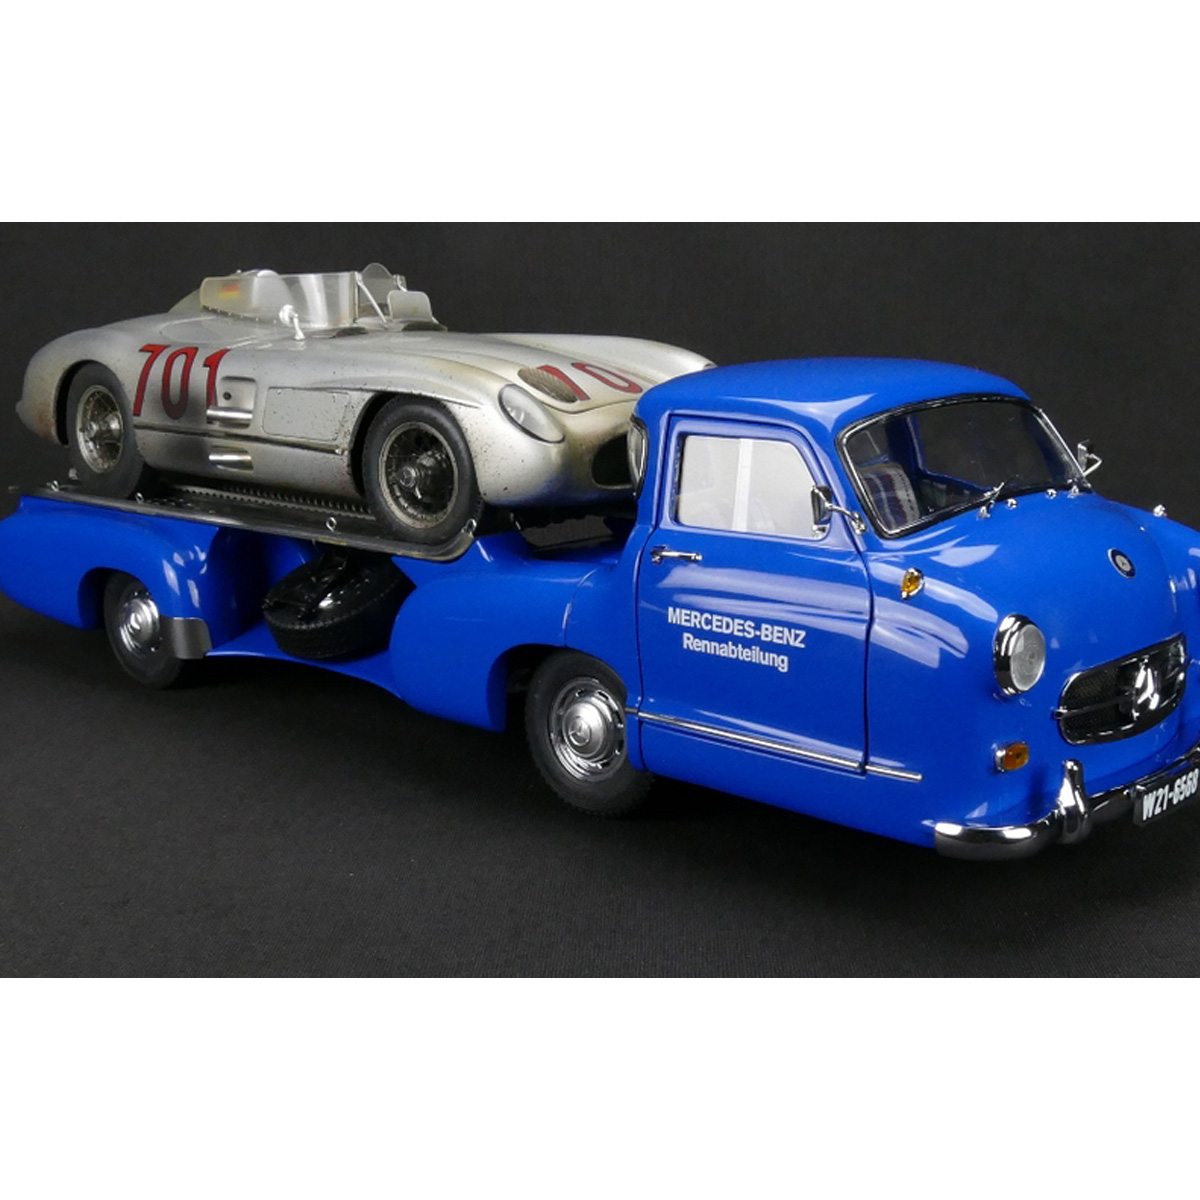 CMC 1955 Mercedes-Benz Blue Wonder + Dirty Hero 300 SLR, Lim Ed 1000